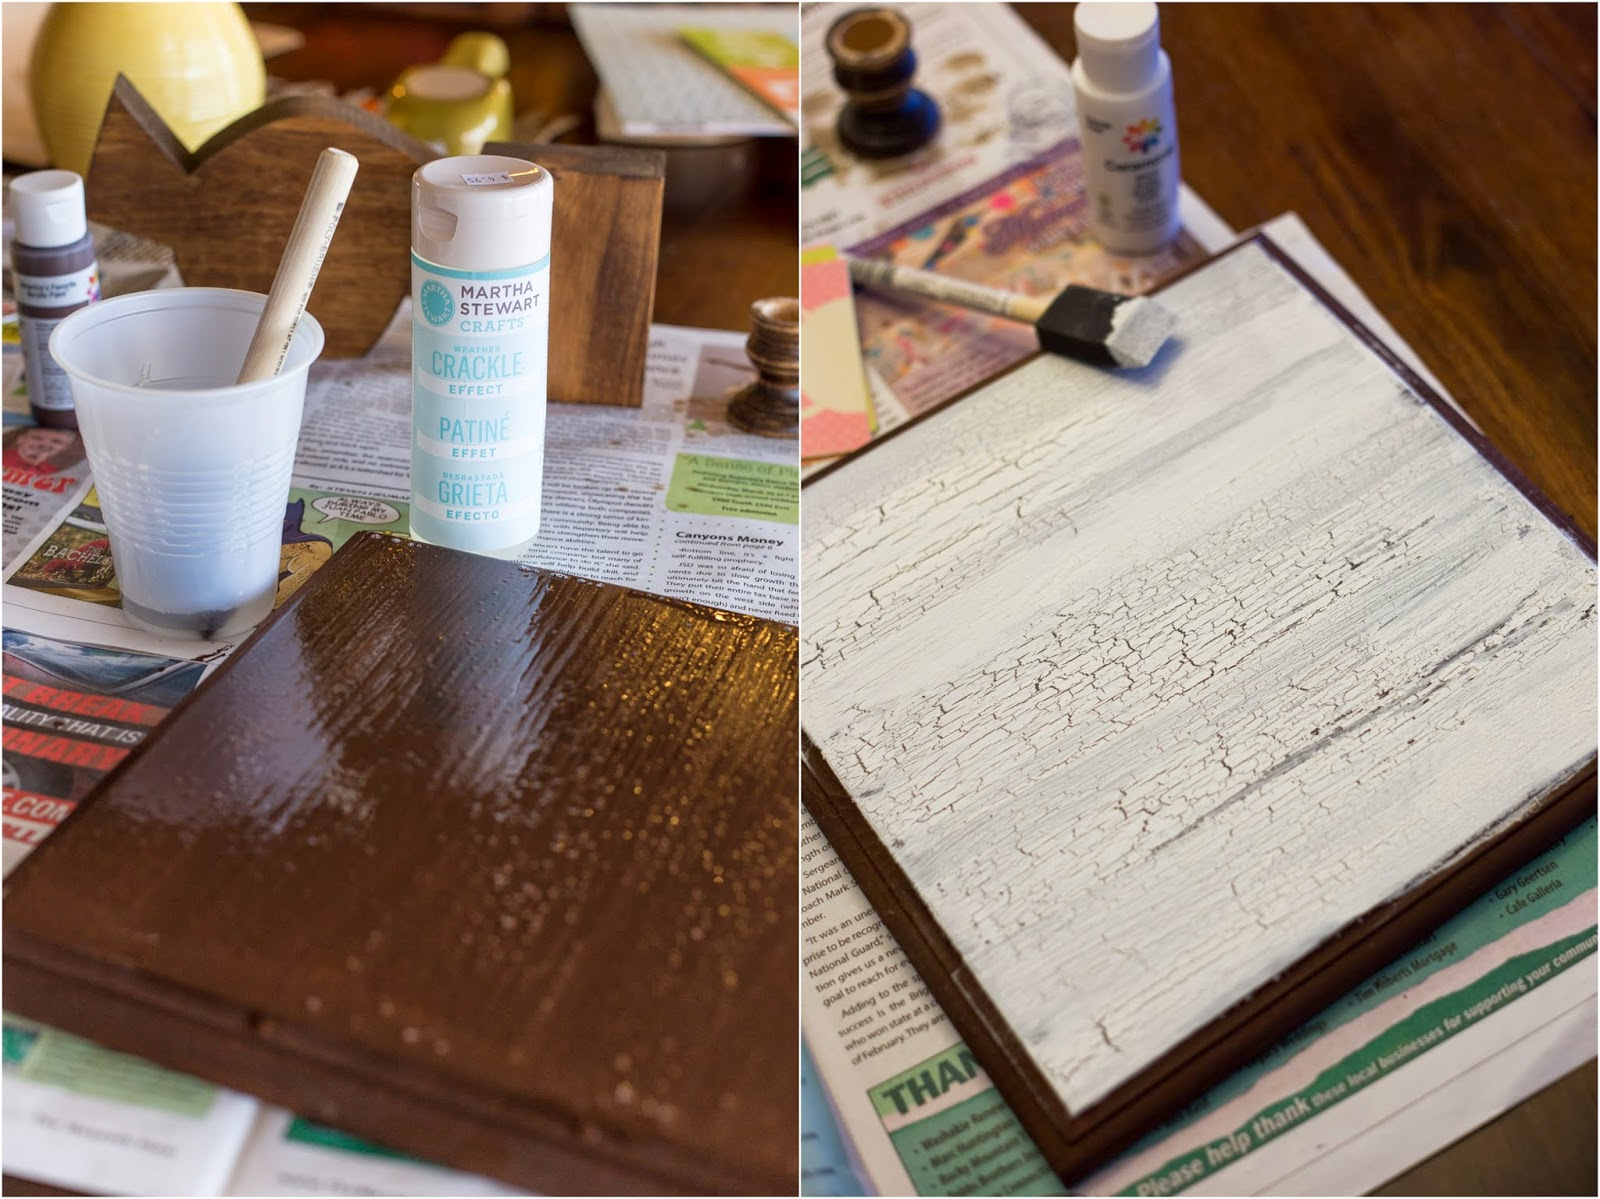 How to put scrapbook paper on wood - While You Are Waiting For Your Crackle To Dry Trace The Bird On Your Favorite Scrapbook Paper Cut It Out And Glue It To The Wooden Bird Using Wood Glue